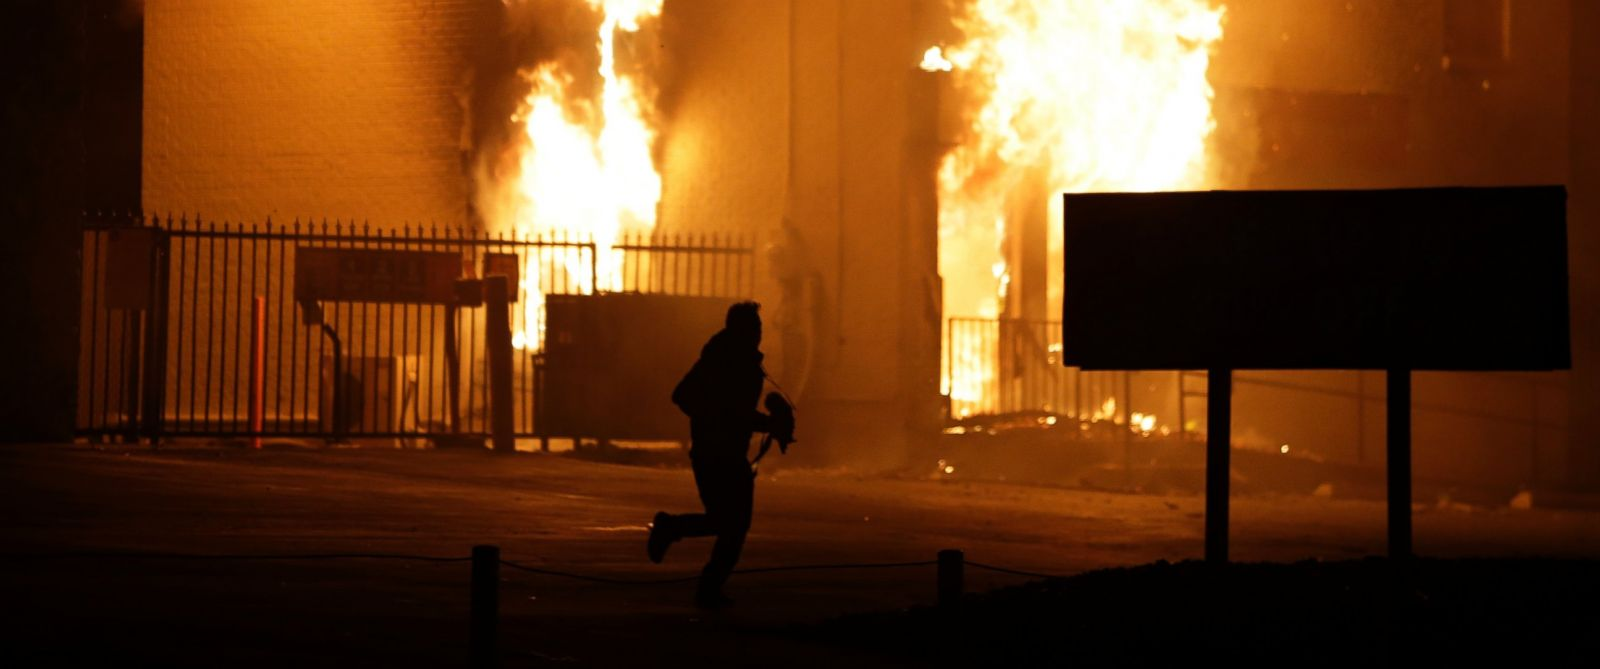 PHOTO: A man runs away from the burning storage facility after the announcement of the grand jury decision not to indict officer Darren Wilson, Nov. 24, 2014, in Ferguson, Mo.